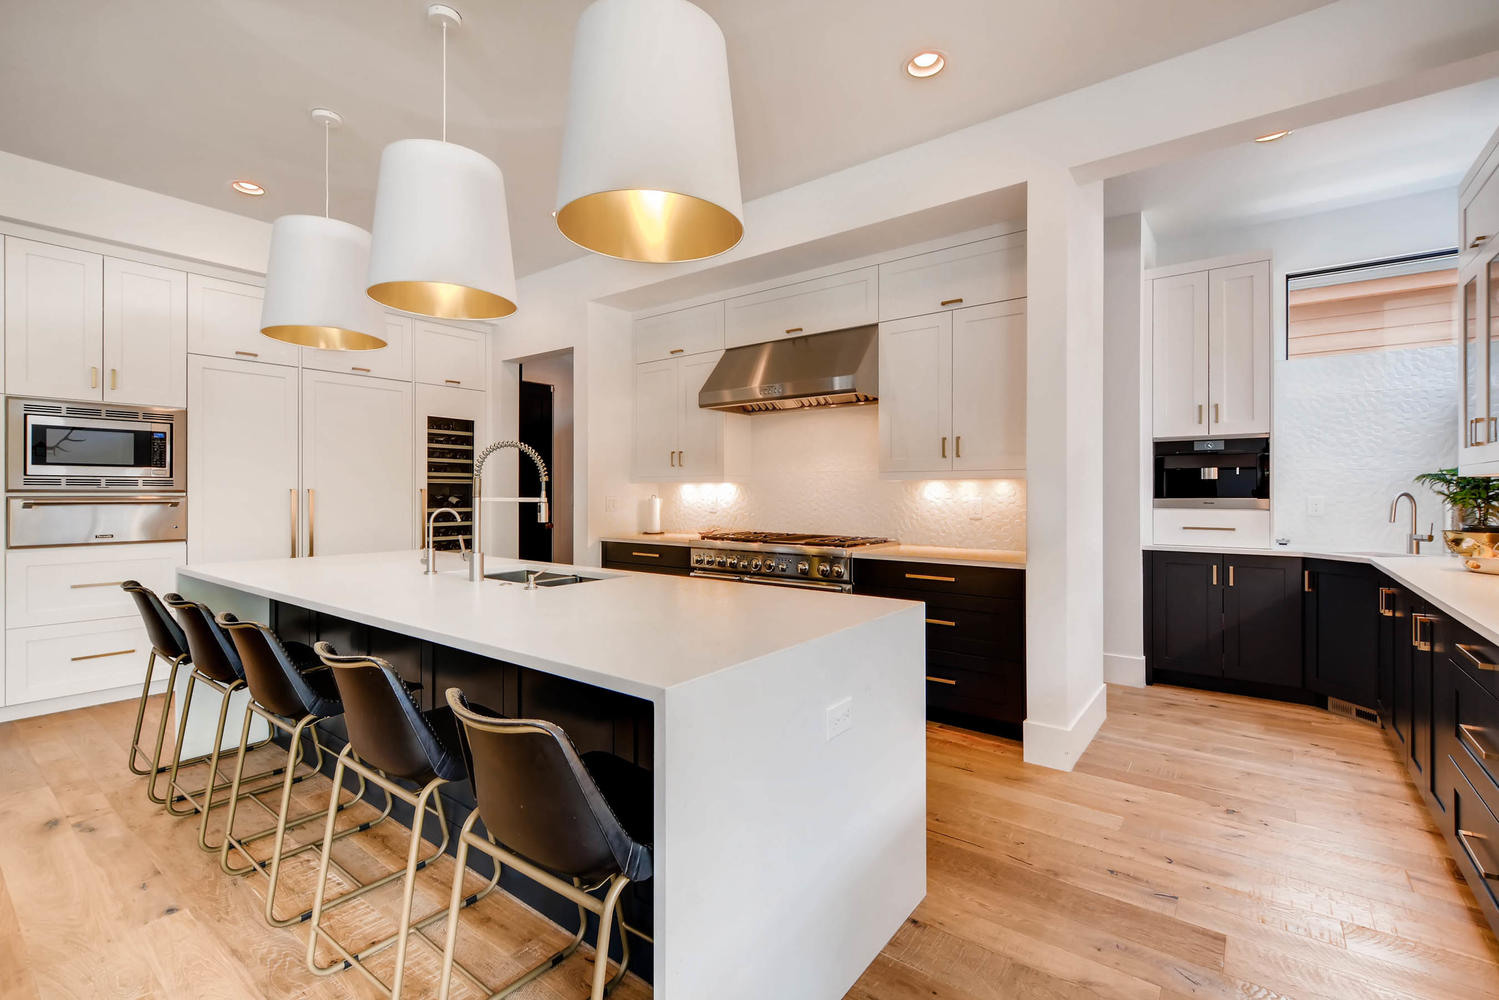 Modern White Farmhouse Kitchen Interior with Kitchen Island and Black Accent Cabinets